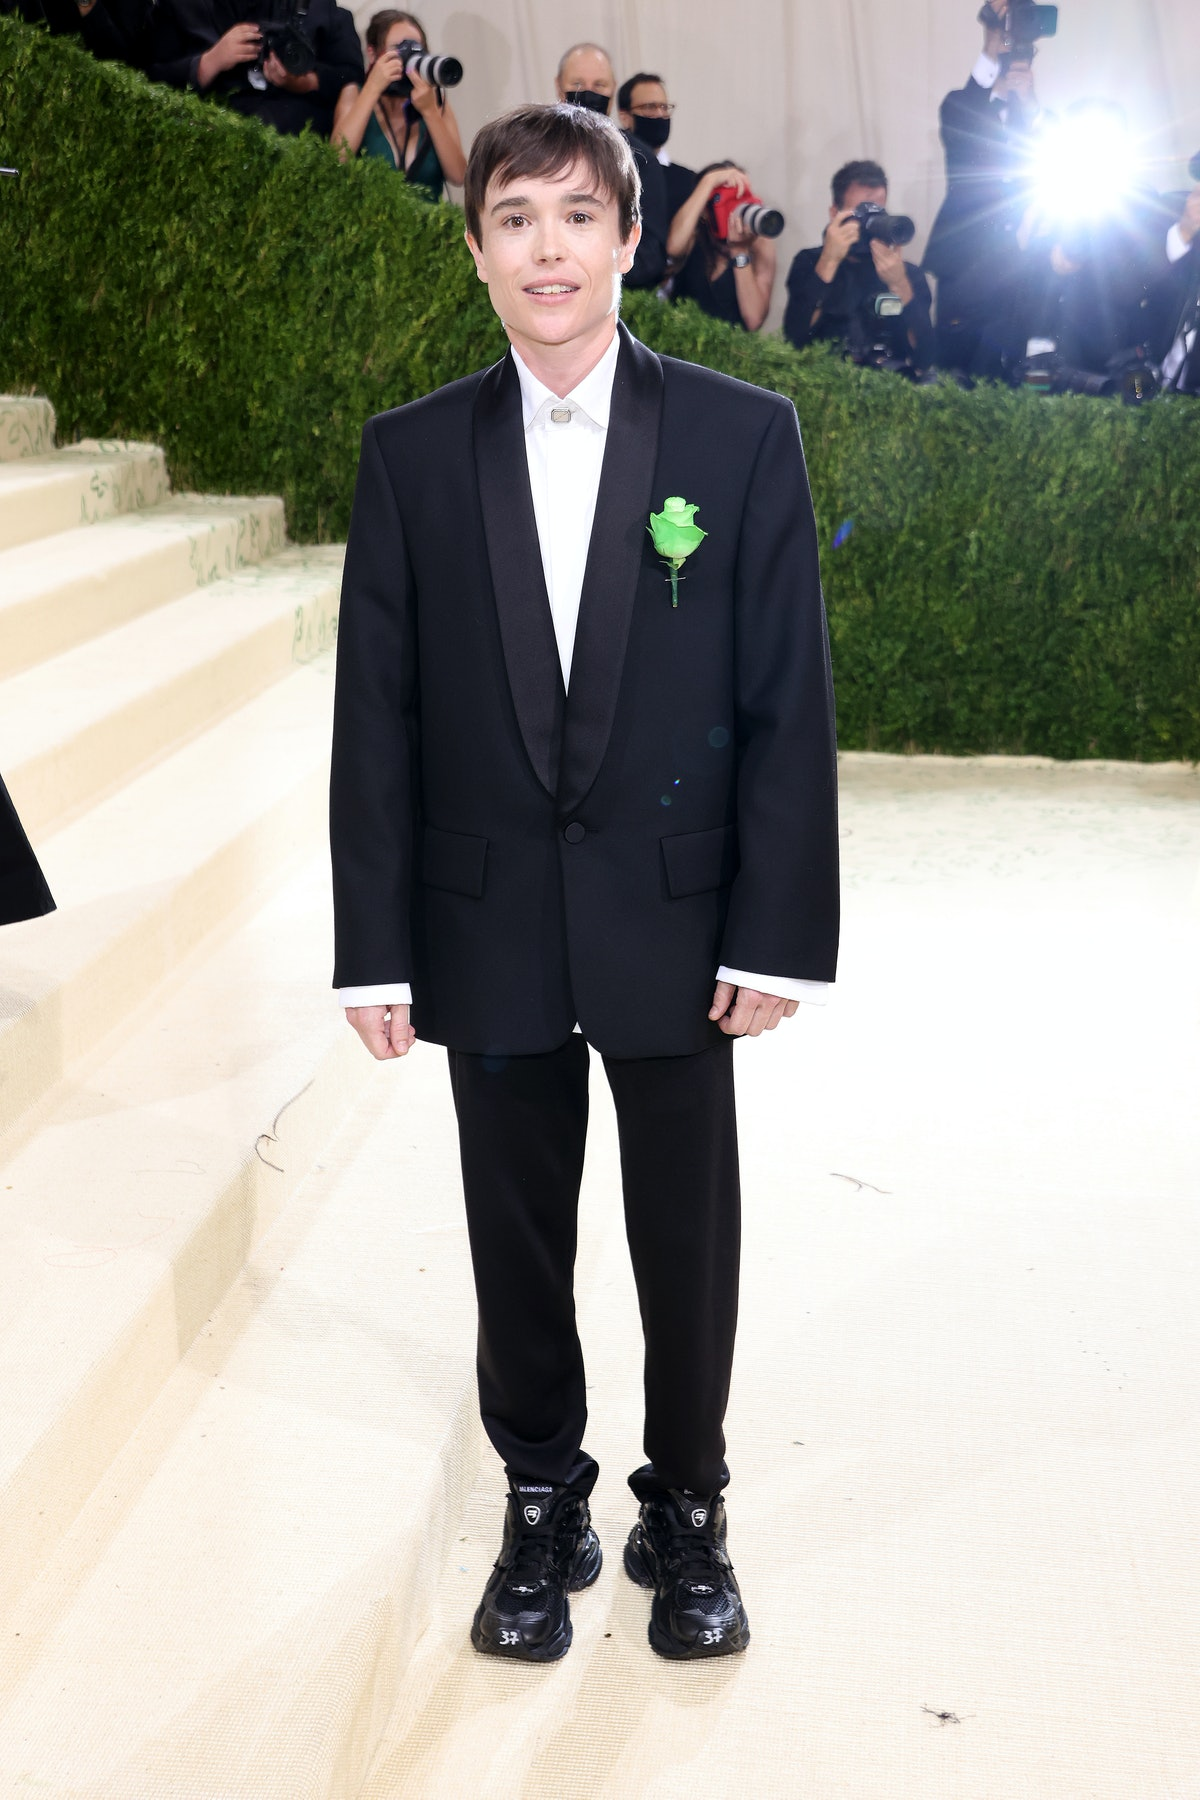 Elliot Page attends The 2021 Met Gala Celebrating In America: A Lexicon Of Fashion at Metropolitan M...